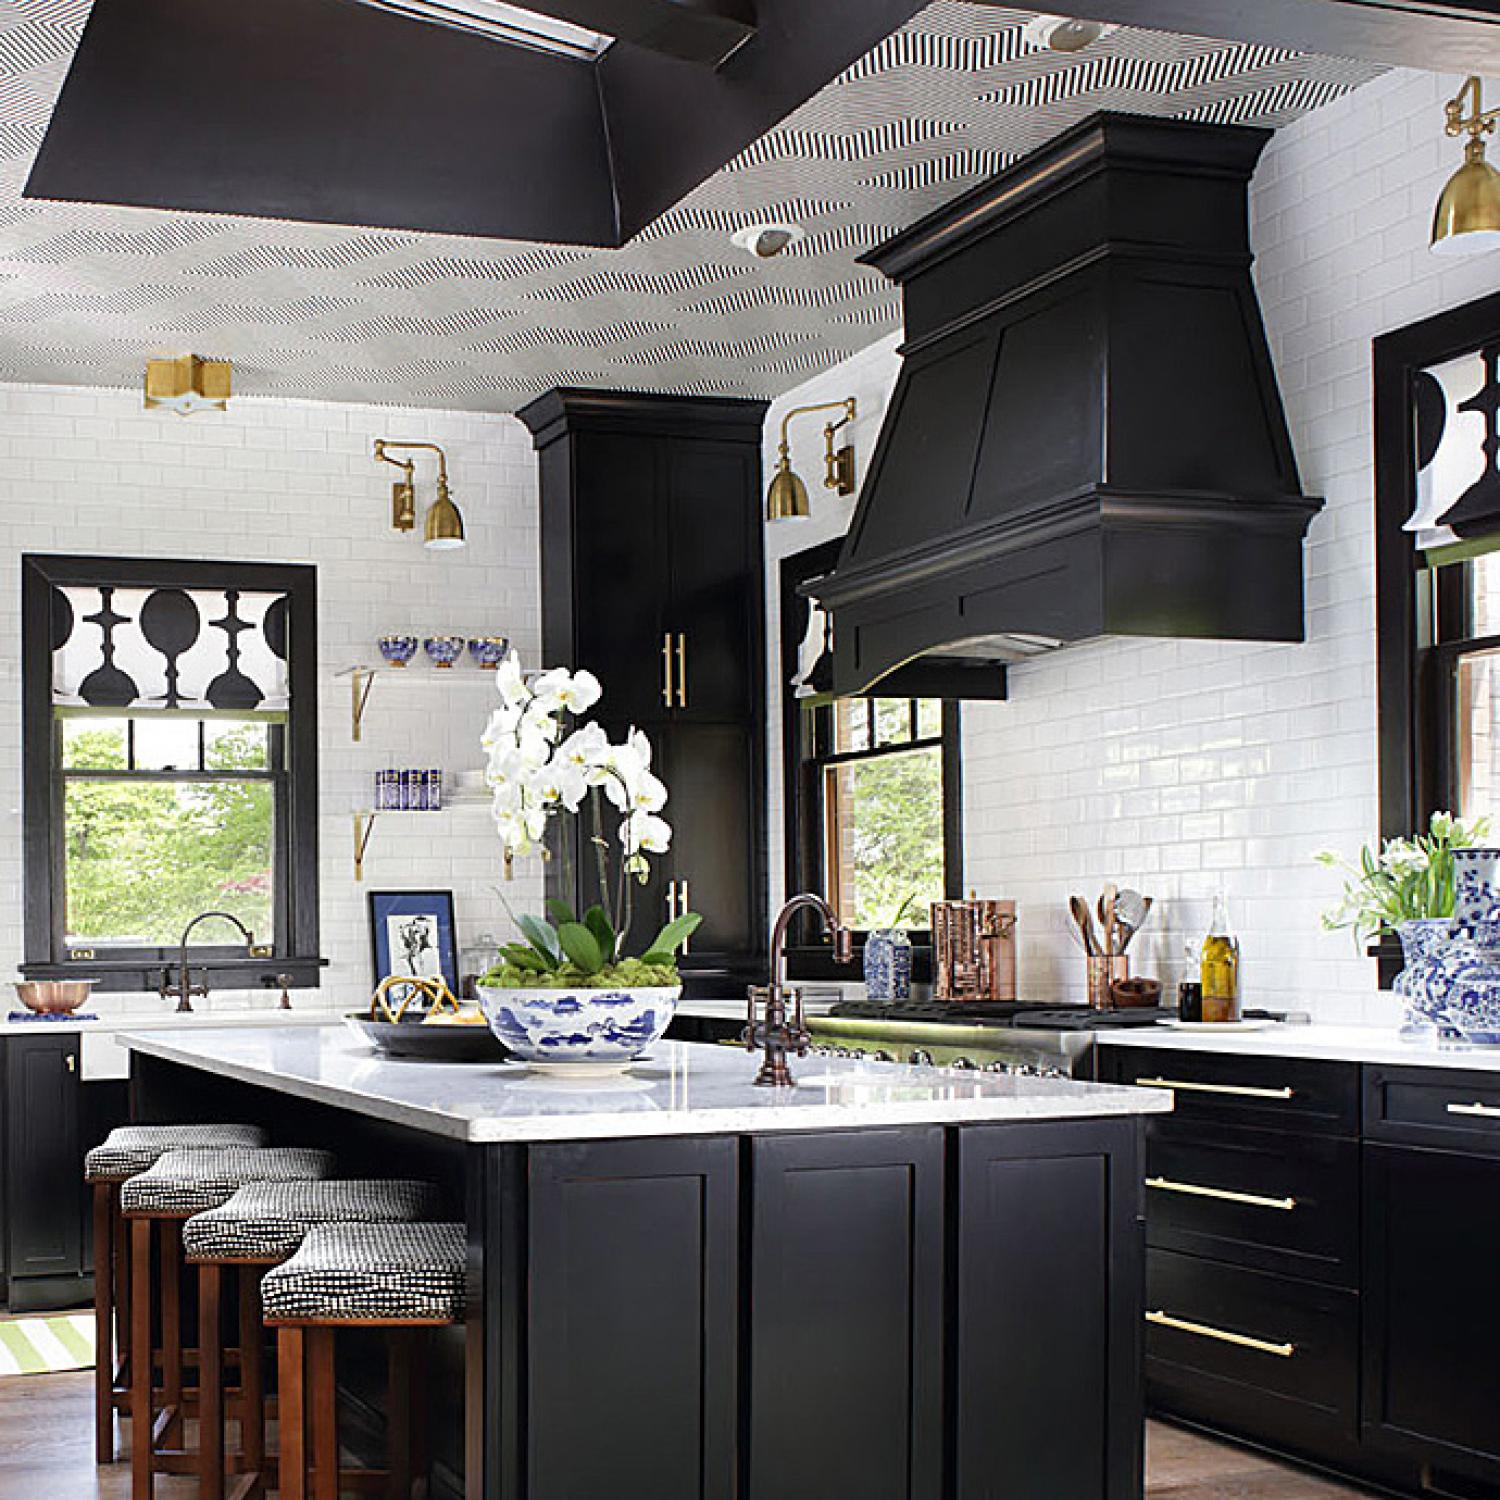 Fabulous Before-and-After Showhouse Kitchen